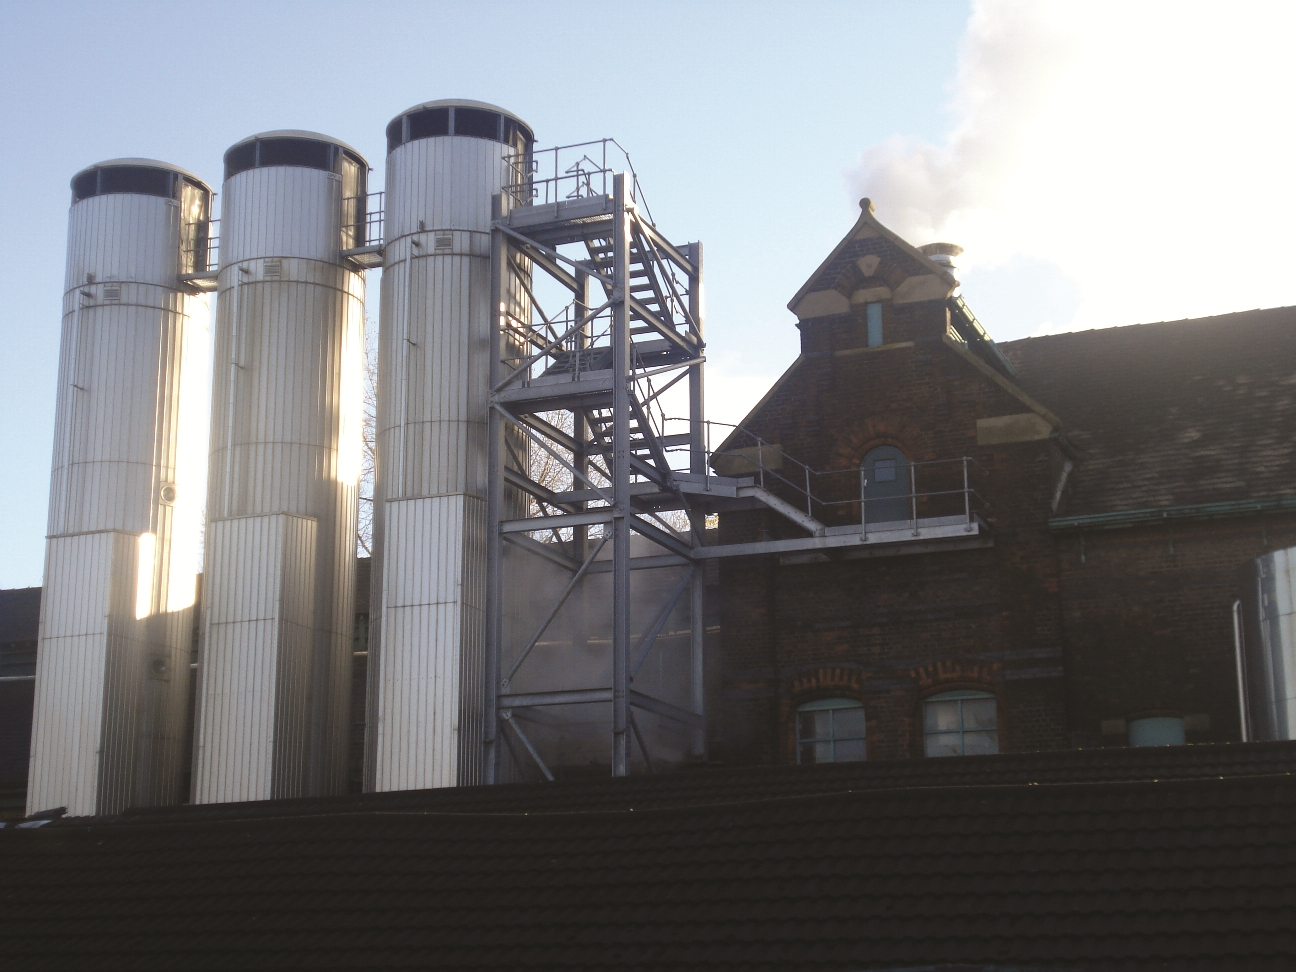 JW Lees' Greengate Brewery in Middleton